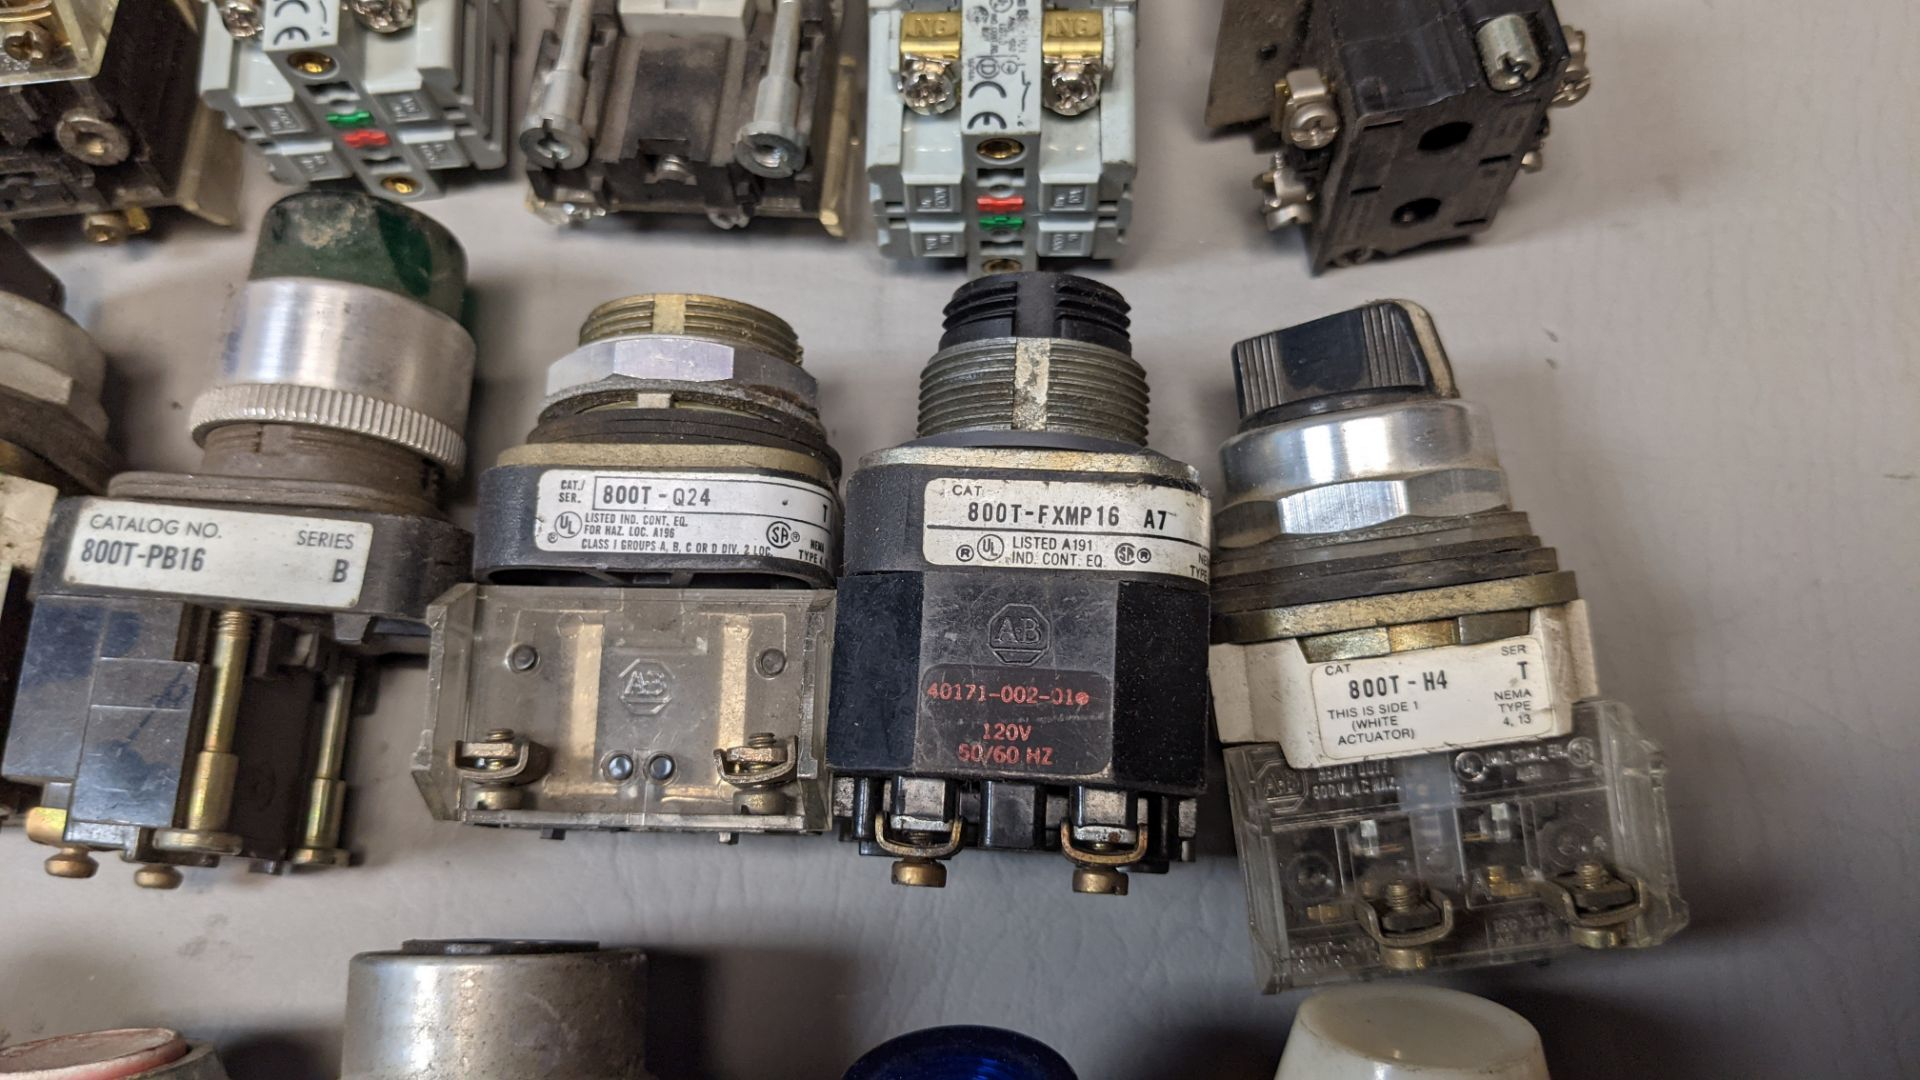 LOT OF PUSHBUTTONS, PILOT LIGHTS, SELECTOR SWITCHES - Image 5 of 7